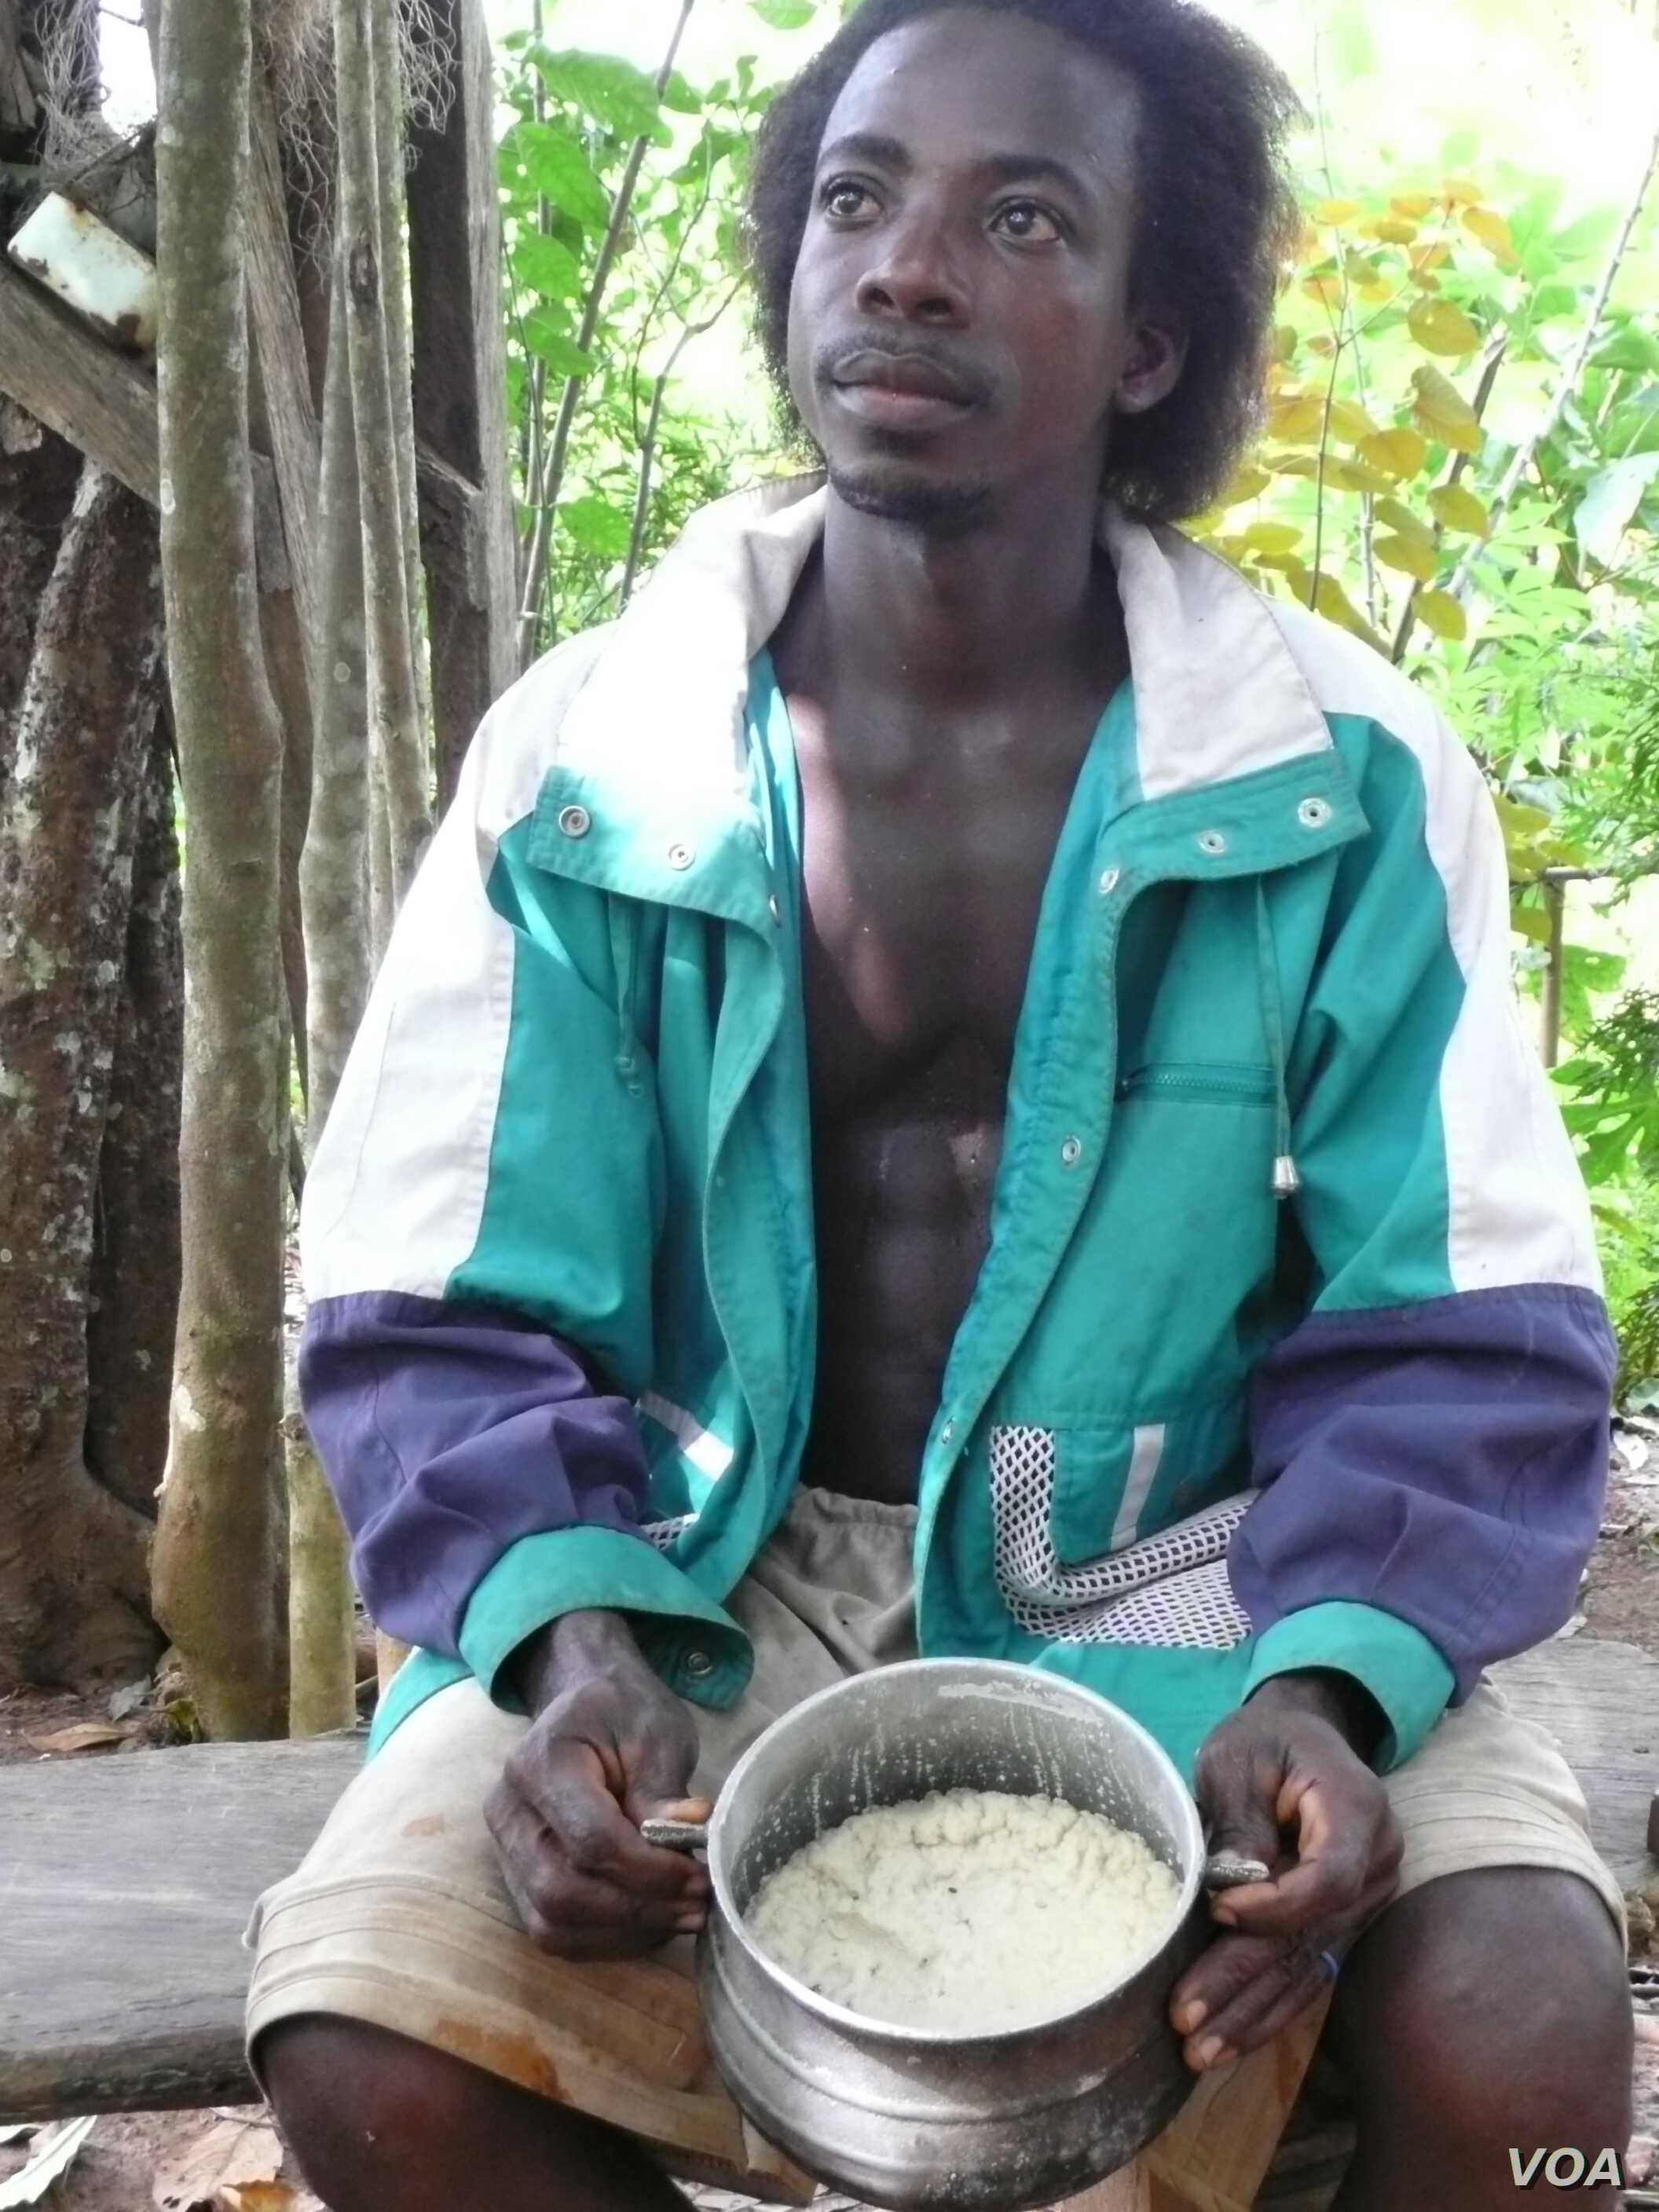 Farmer Yaw Obeng of Ghana with cooking fat made from Allanblackia seeds. (Credit: World Agro Forestry Centre/Charlie Pye-Smith)